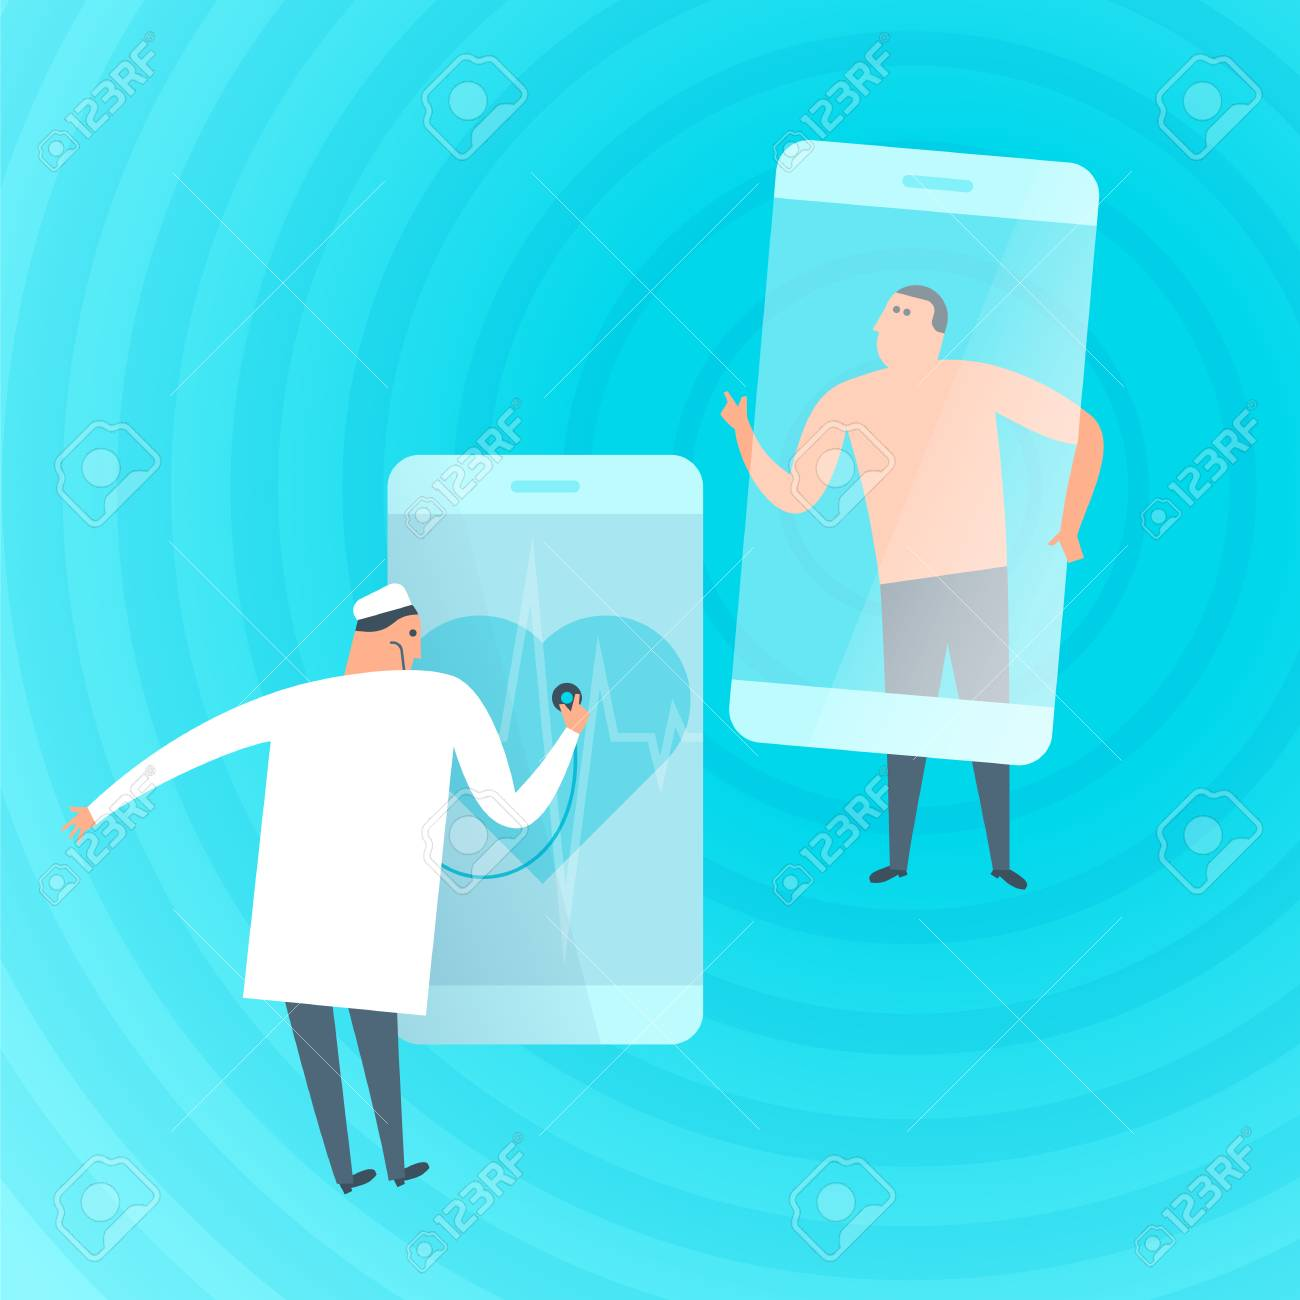 Doctor exams patient's heartbeat by phone. Online, tele medicine flat concept illustration. Medic with stethoscope listens heart at smartphone screen. Telemedicine, telehealth vector design element. - 101817719